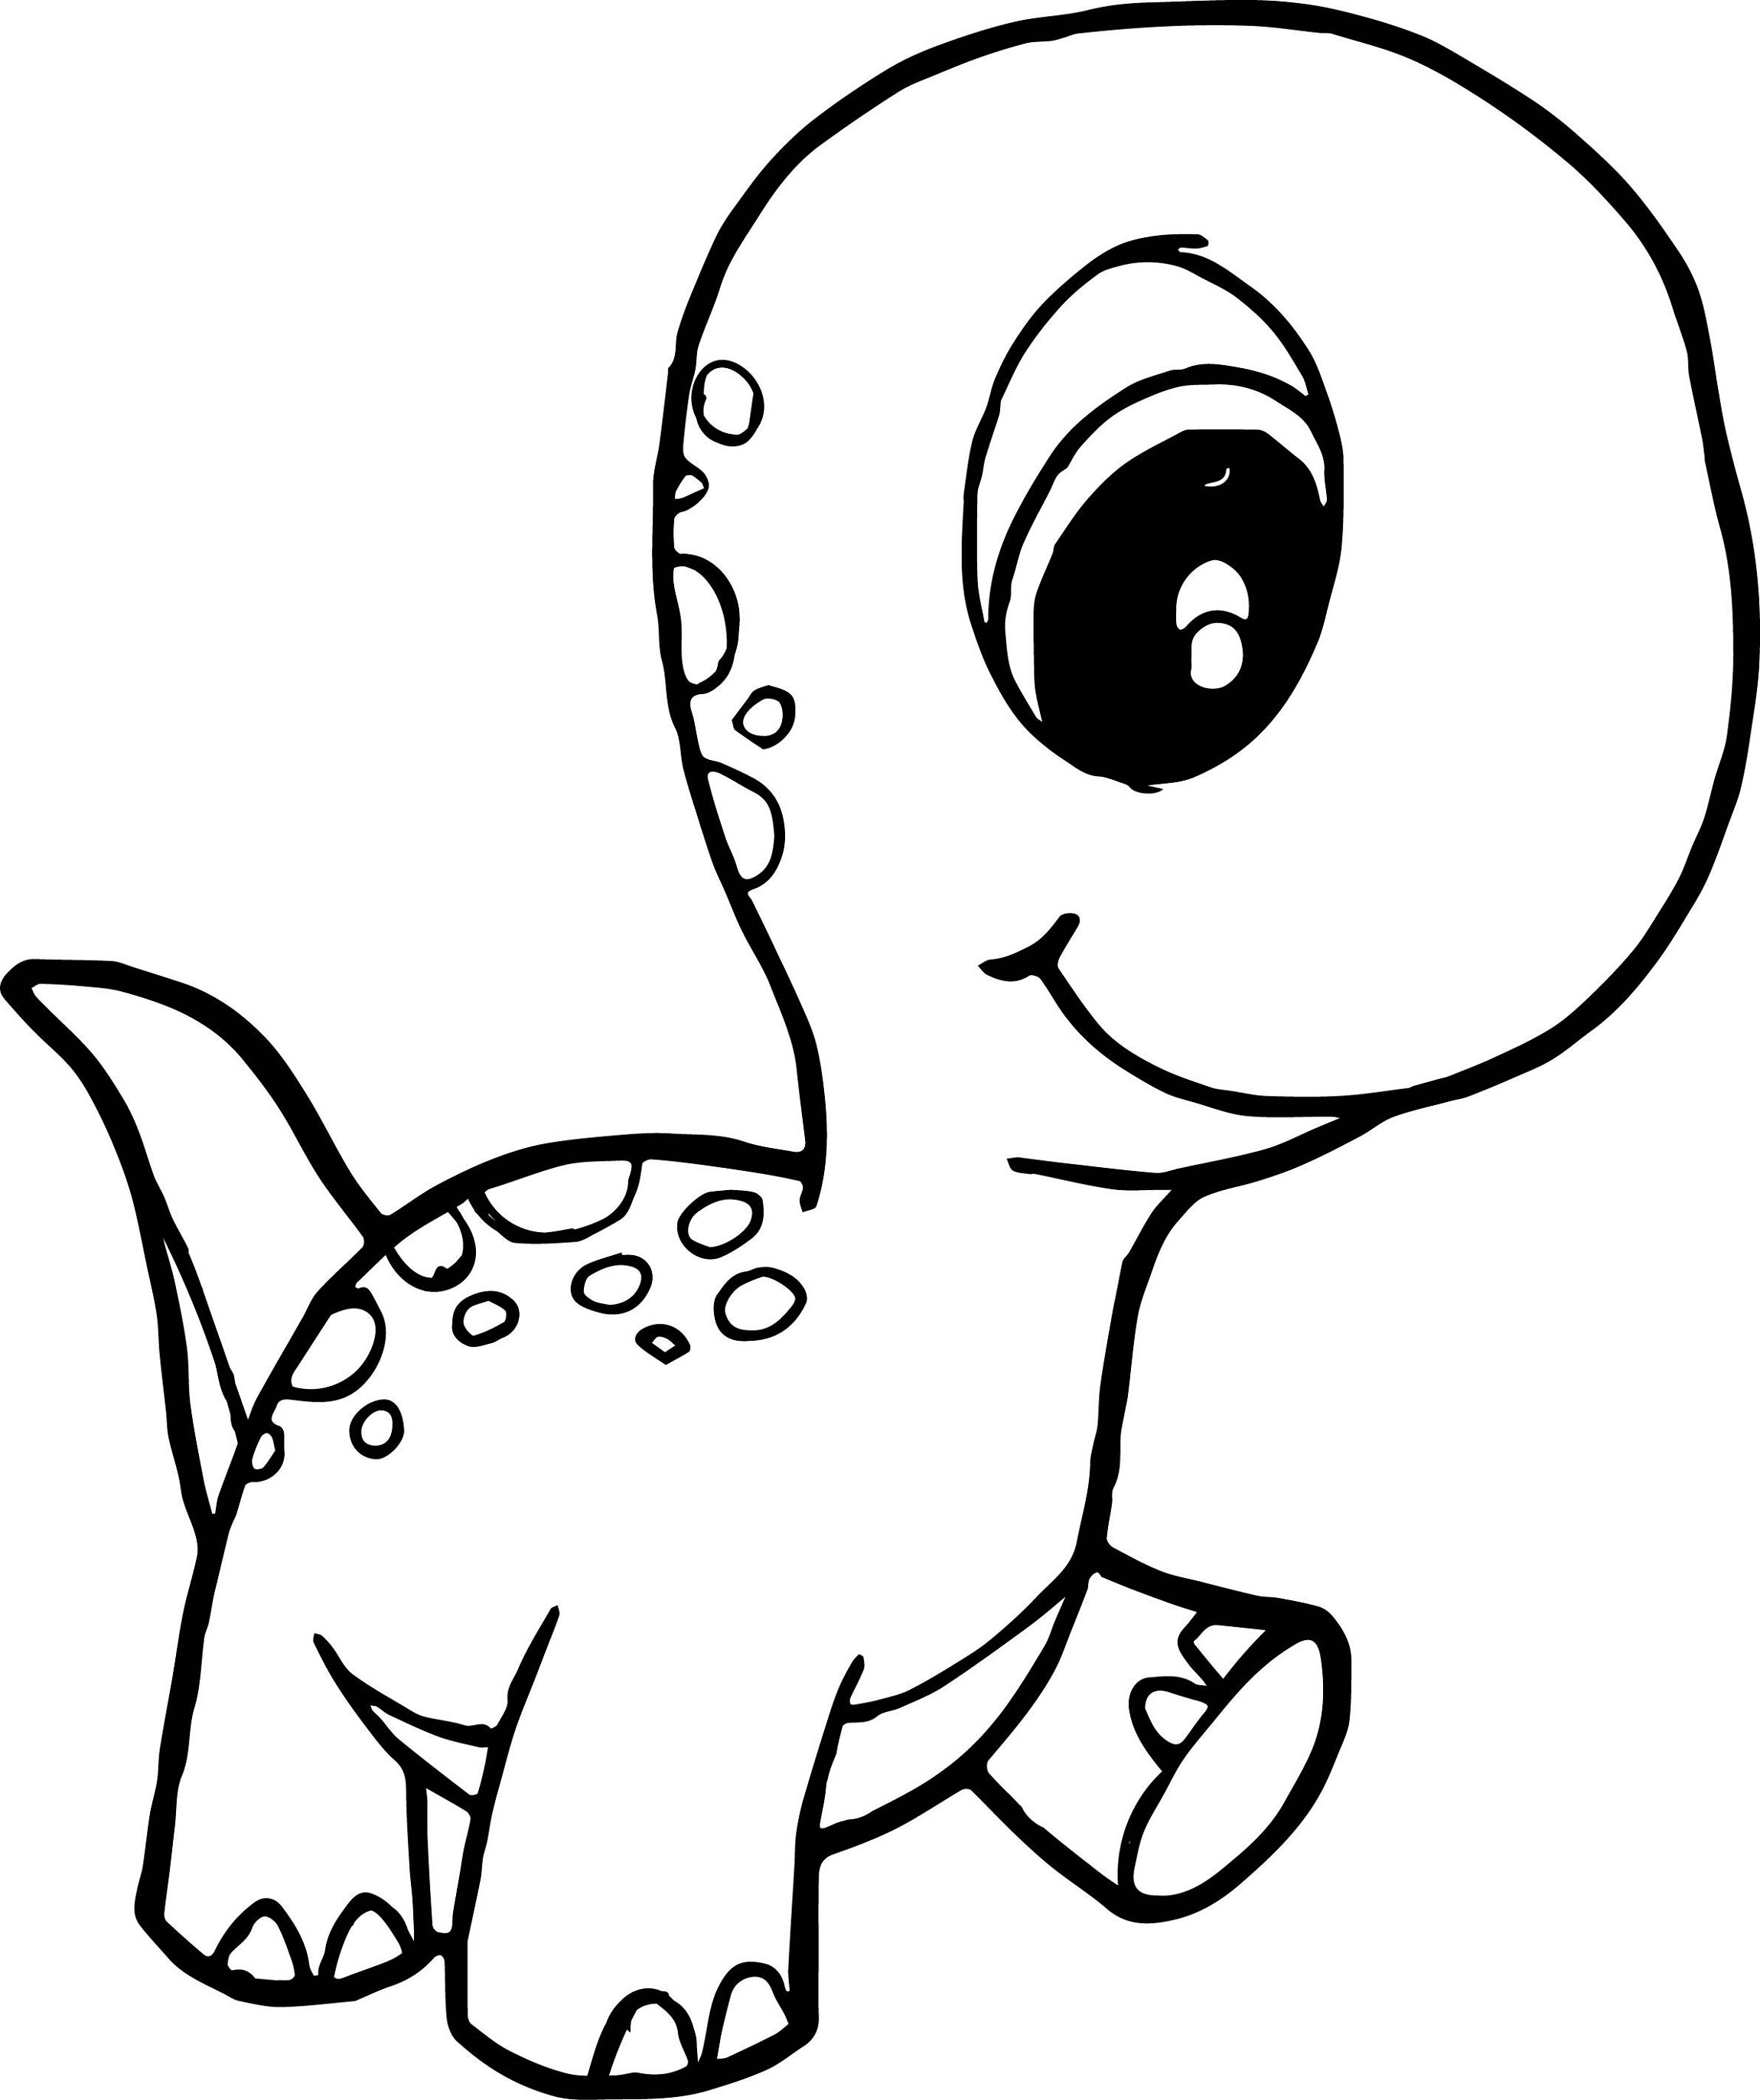 Baby Dinosaur Coloring Pages for Preschoolers Dinosaur